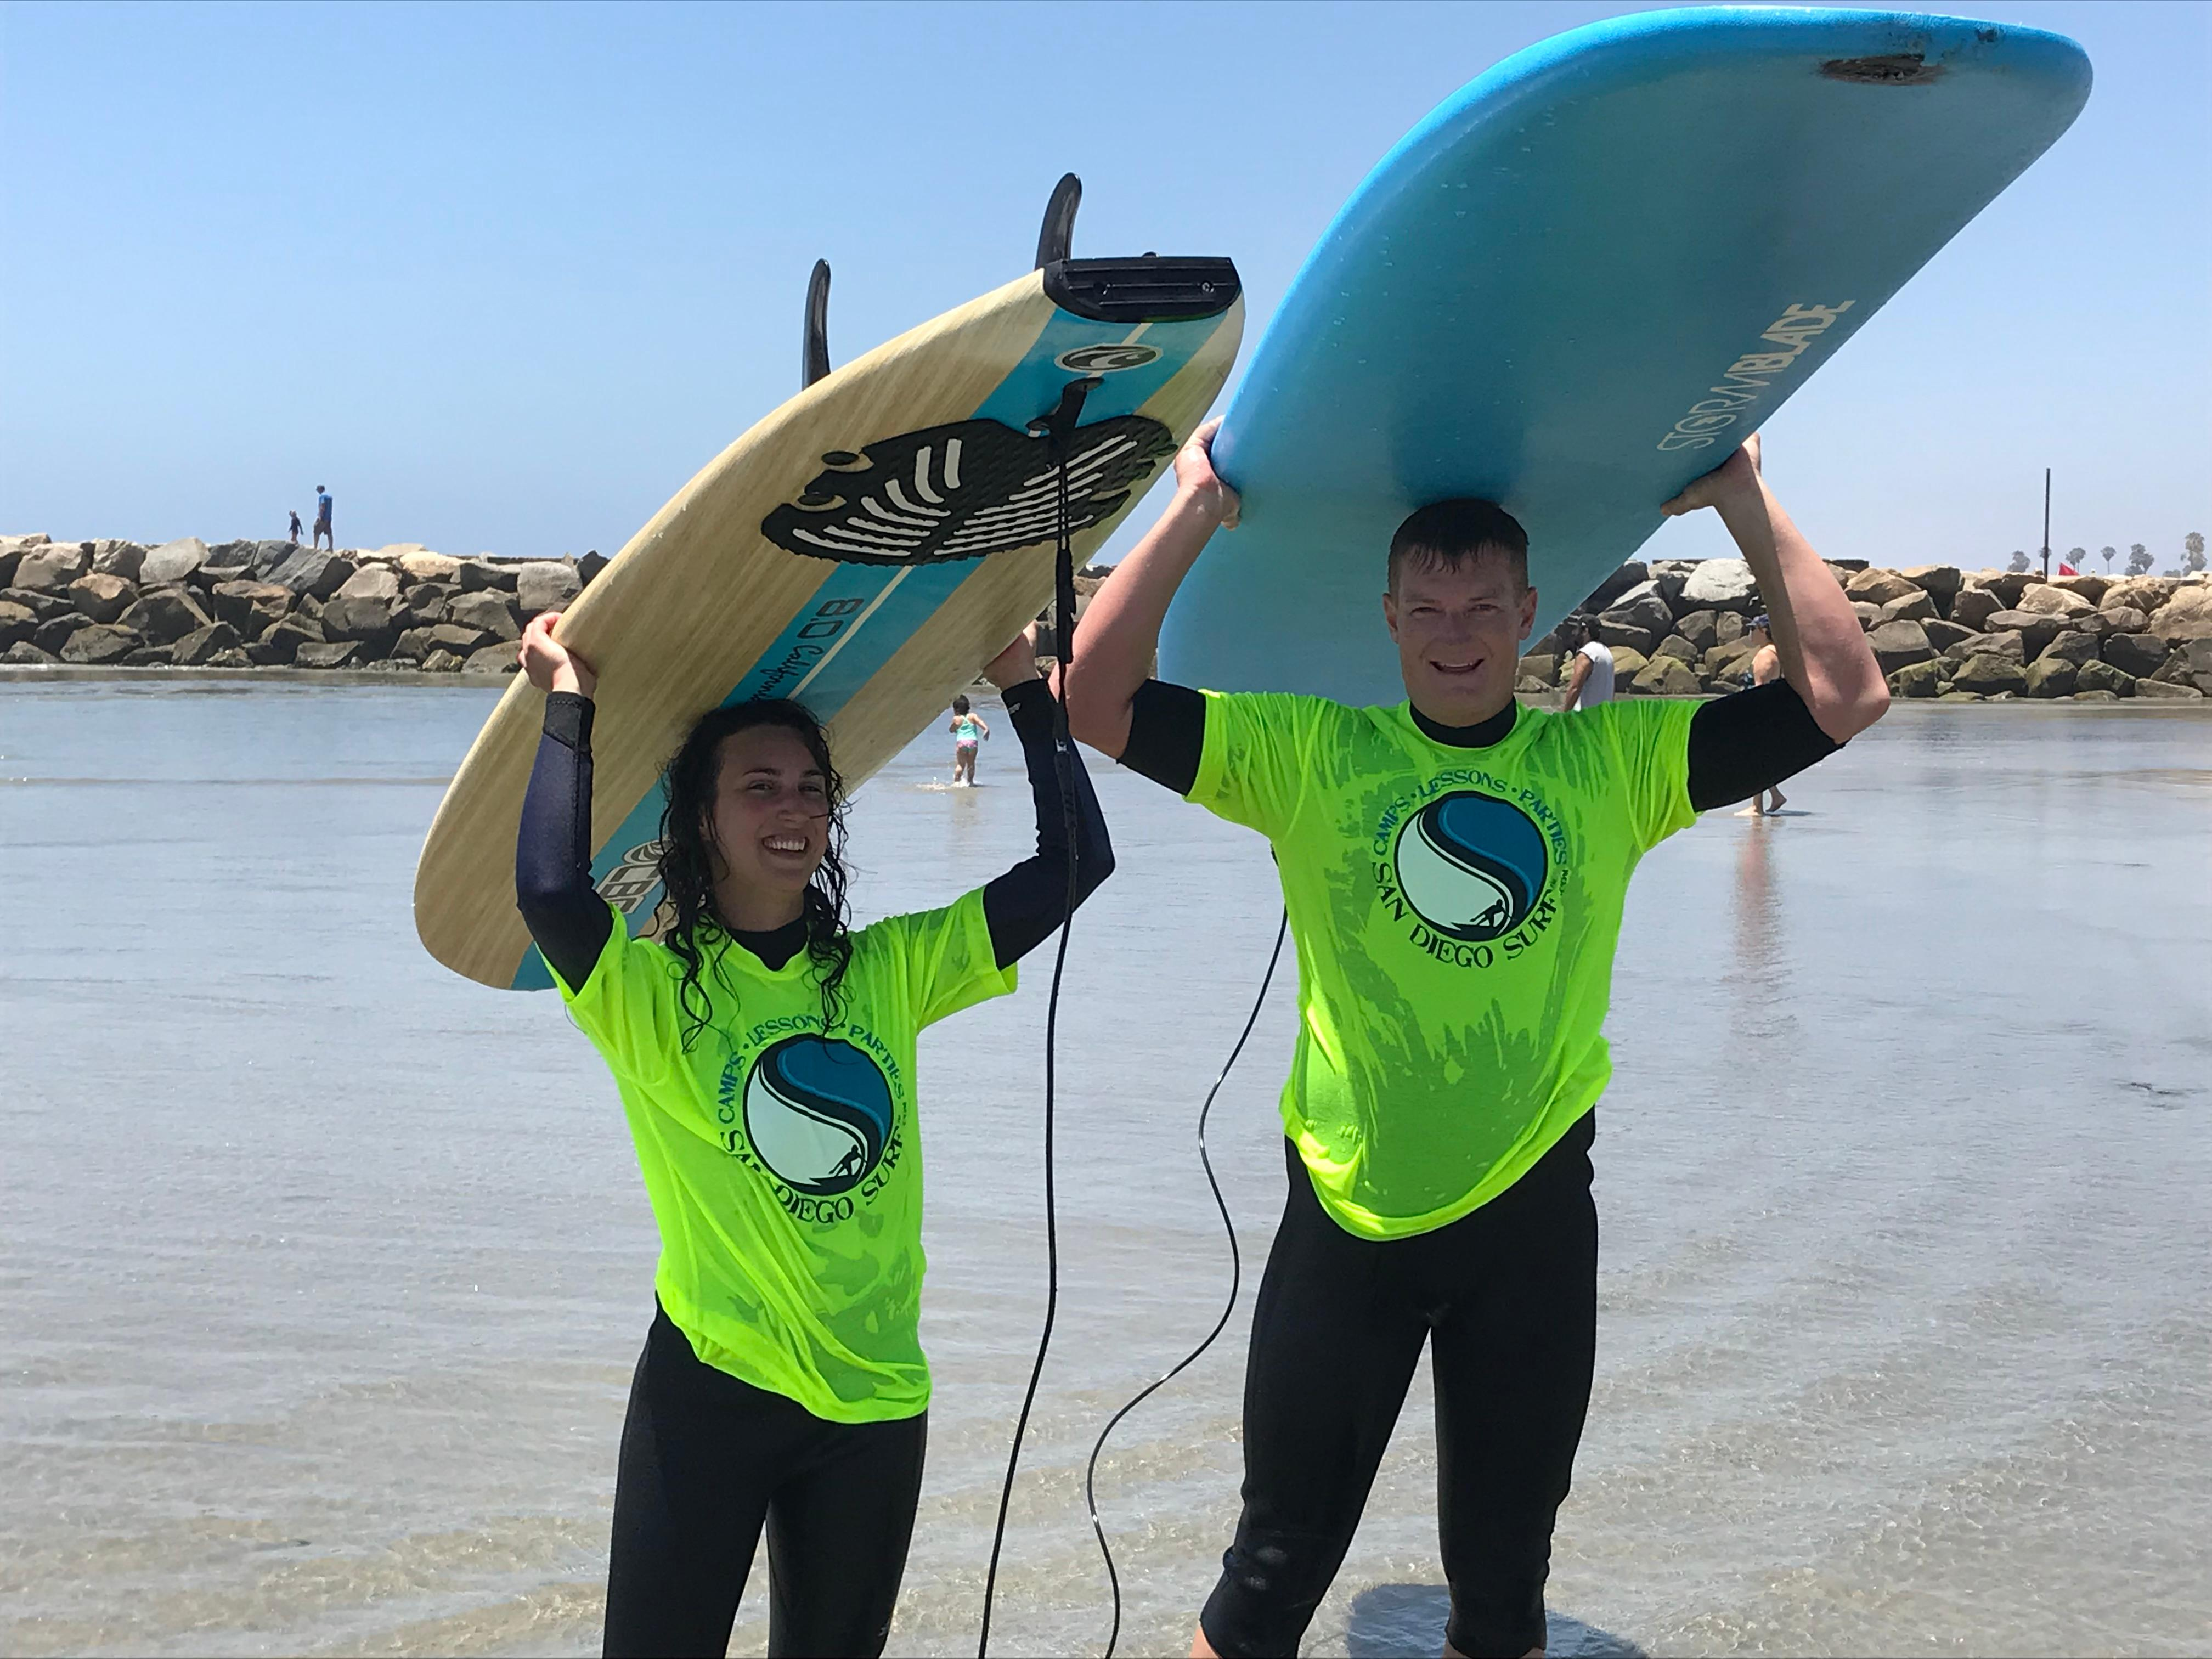 Our Honeymooners from Canada, book your fun experience at sandiegosurf.com